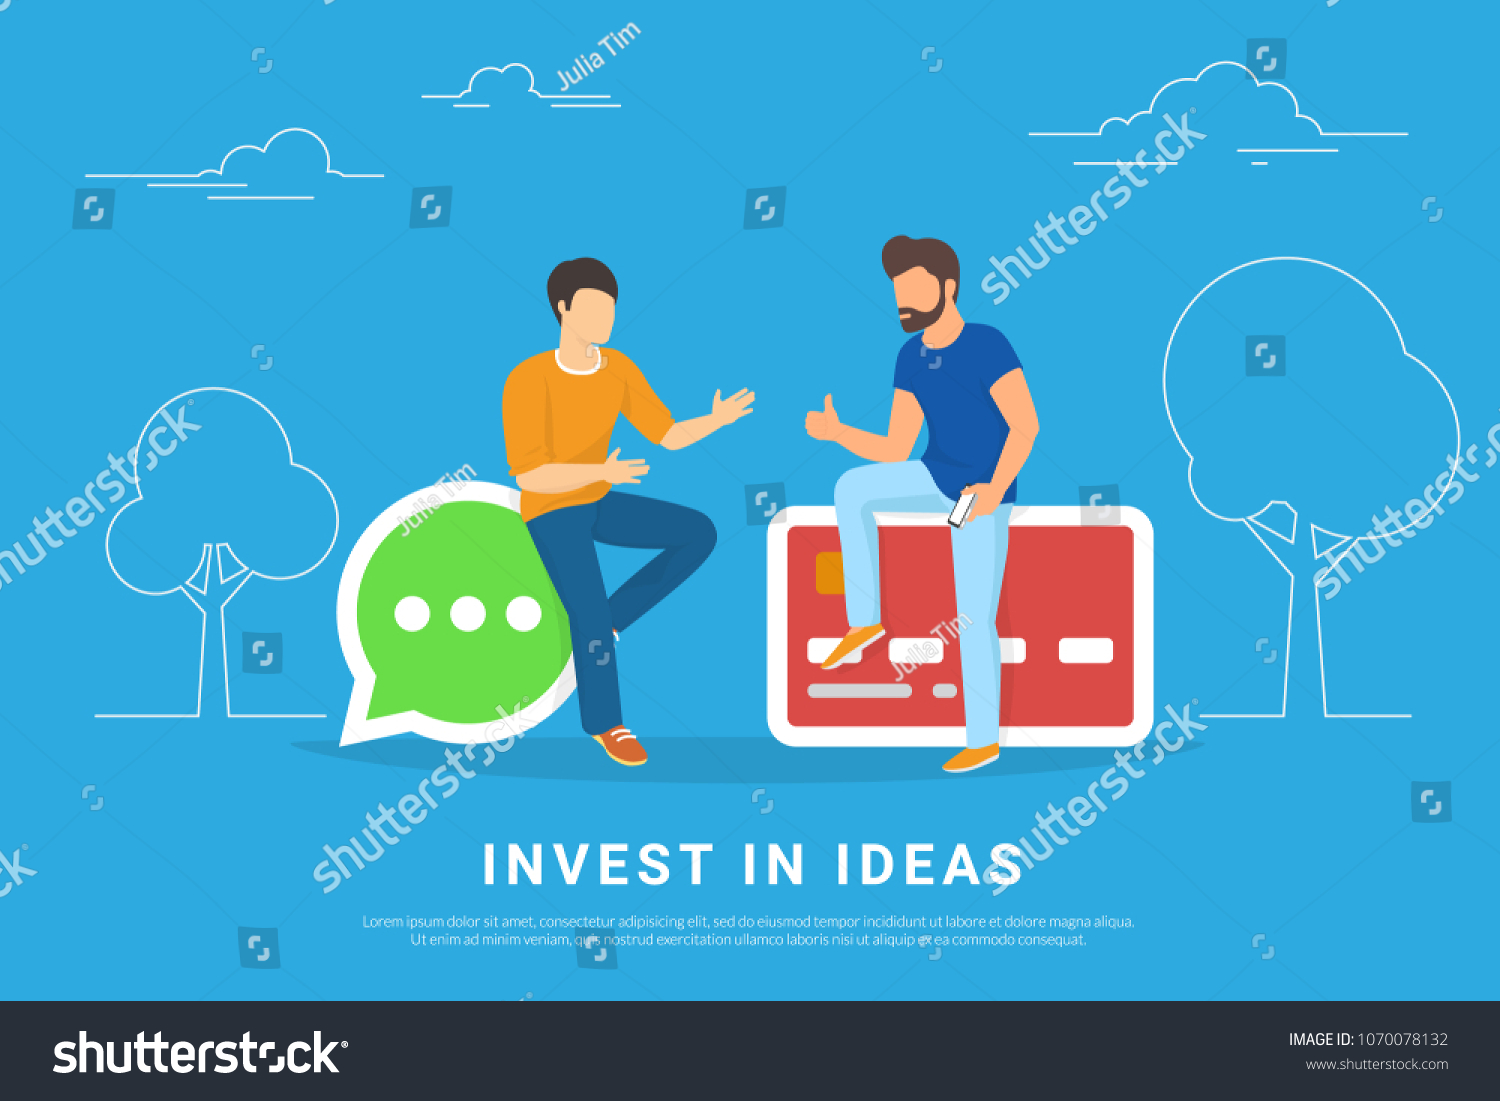 Invest in new ideas cholamandalam investment and finance company limited annual report